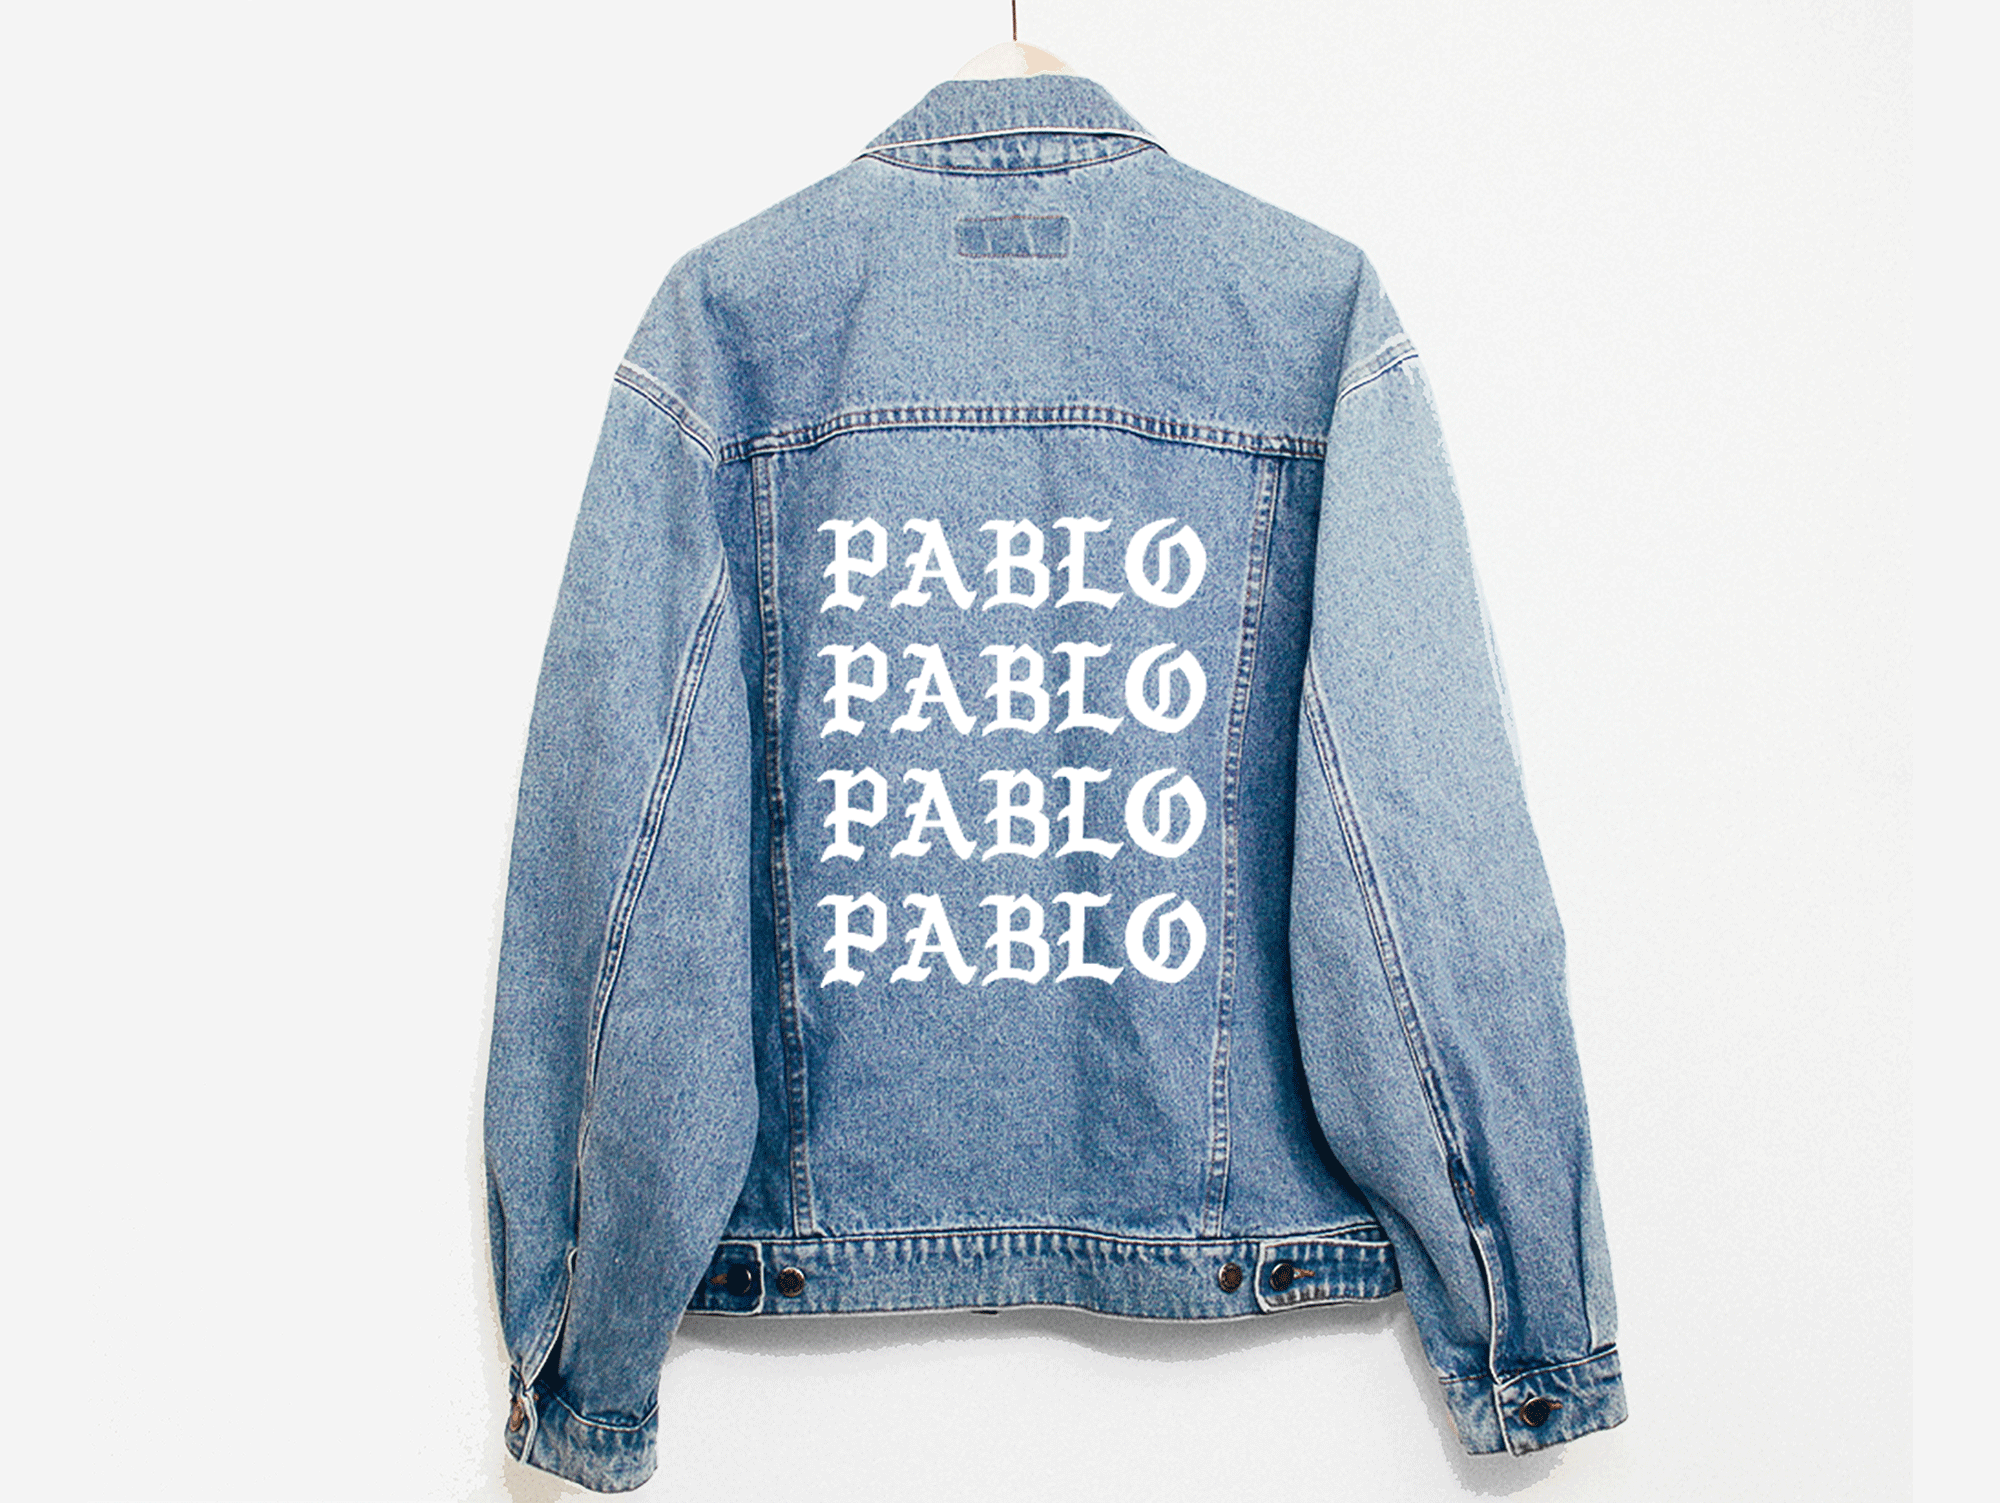 chaussures de séparation 9c8d3 068c5 Pablo Denim Jacket | i need it | Vintage denim, Denim jeans ...